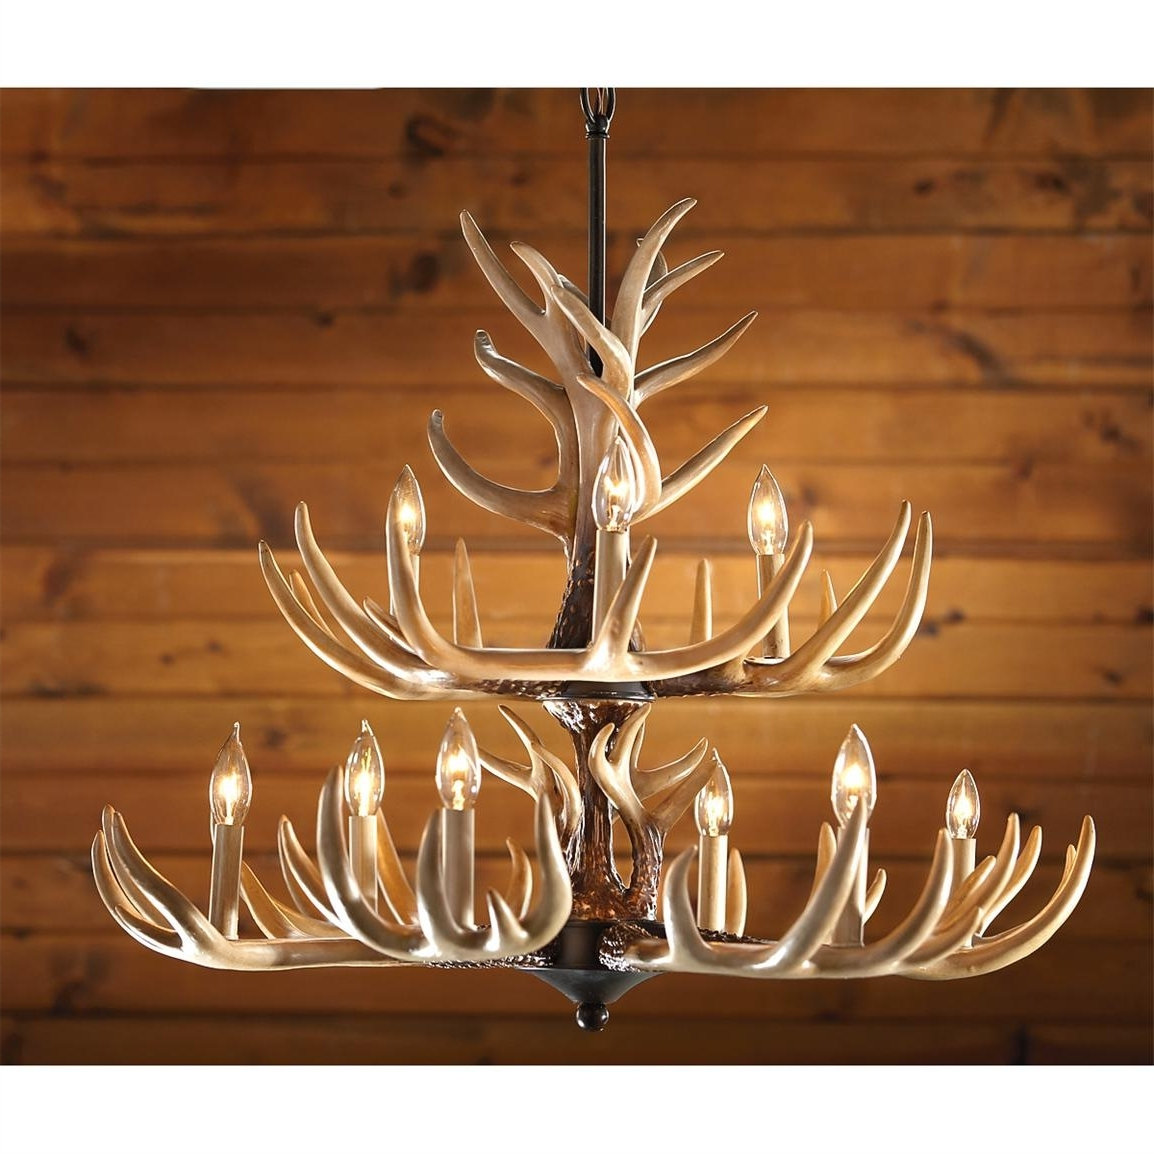 Antler Chandelier With Well Liked Castlecreek 9 Light Whitetail Antler Chandelier – 226093, Lighting (View 4 of 15)